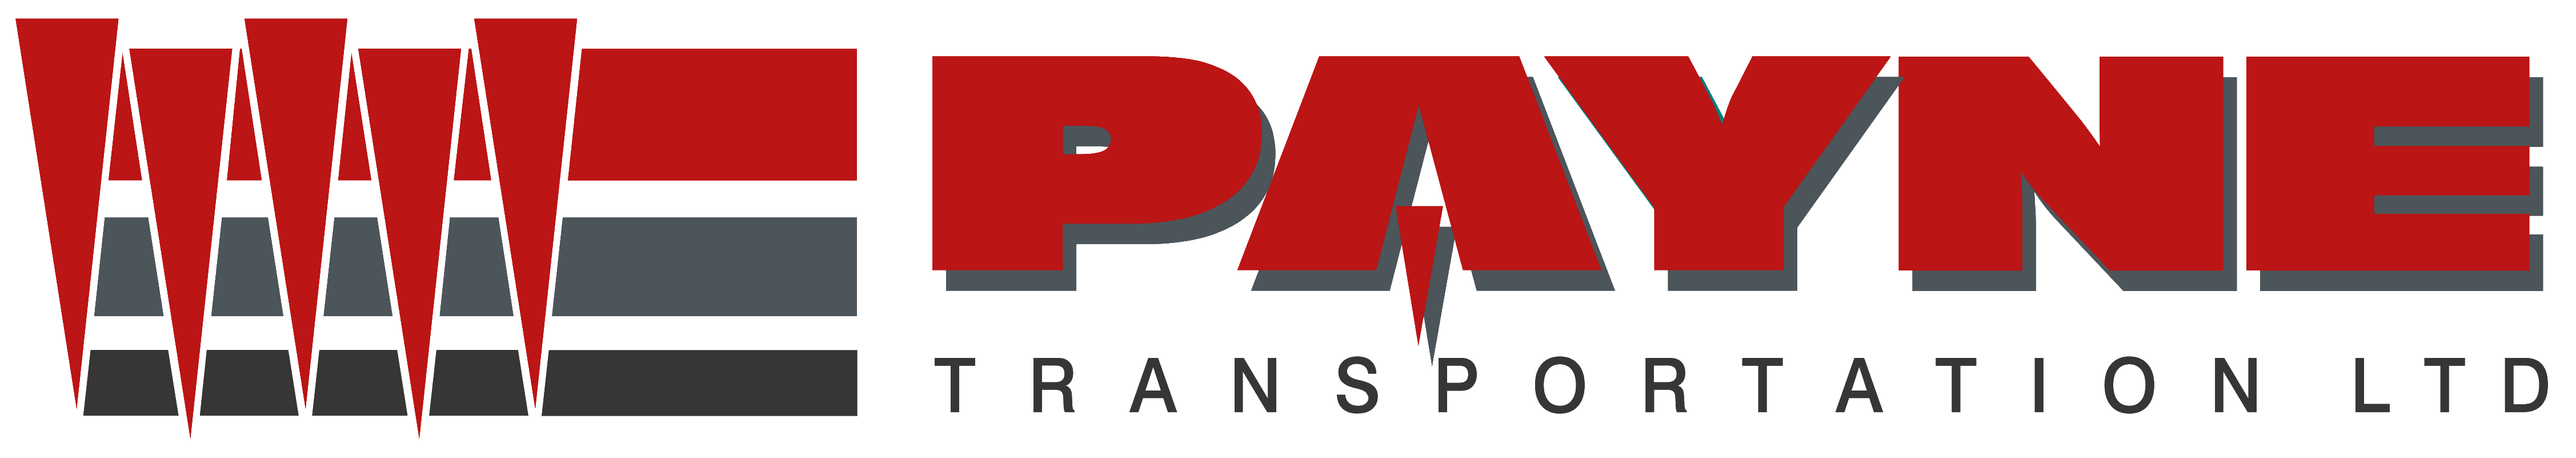 Payne Transportation